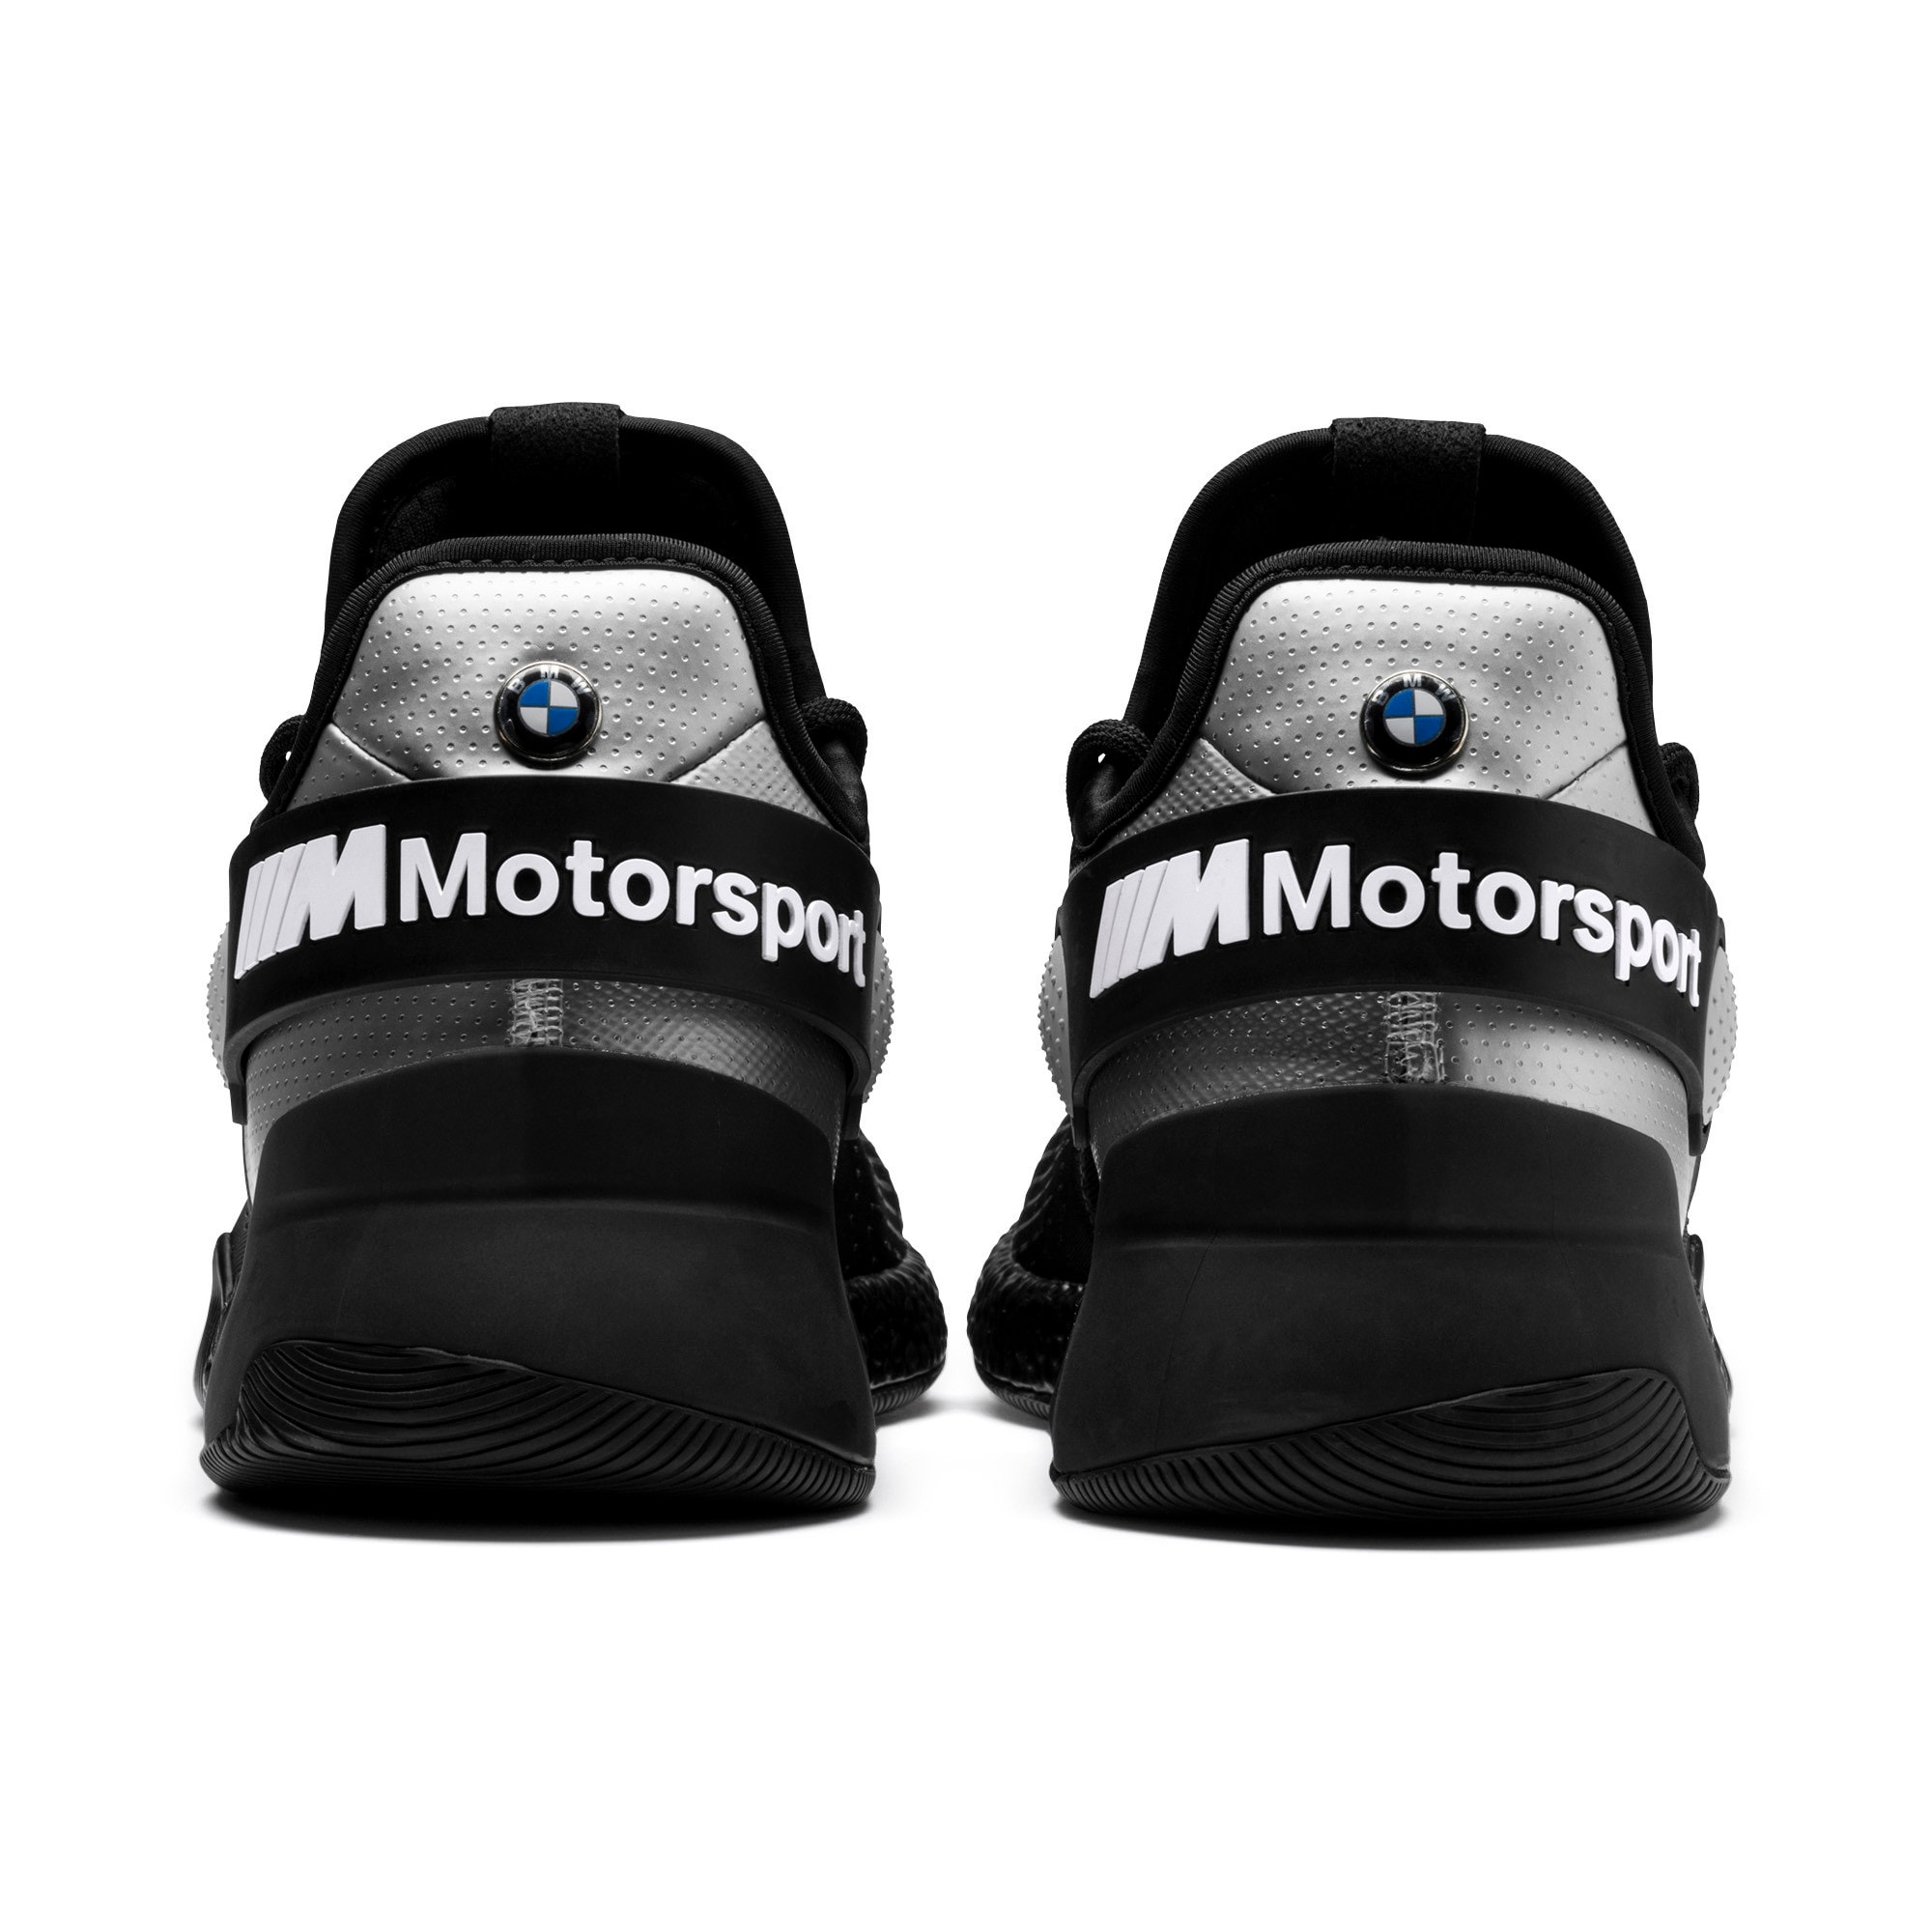 Thumbnail 4 of BMW M Motorsport HYBRID Men's Trainers, Black-Puma Silver- White, medium